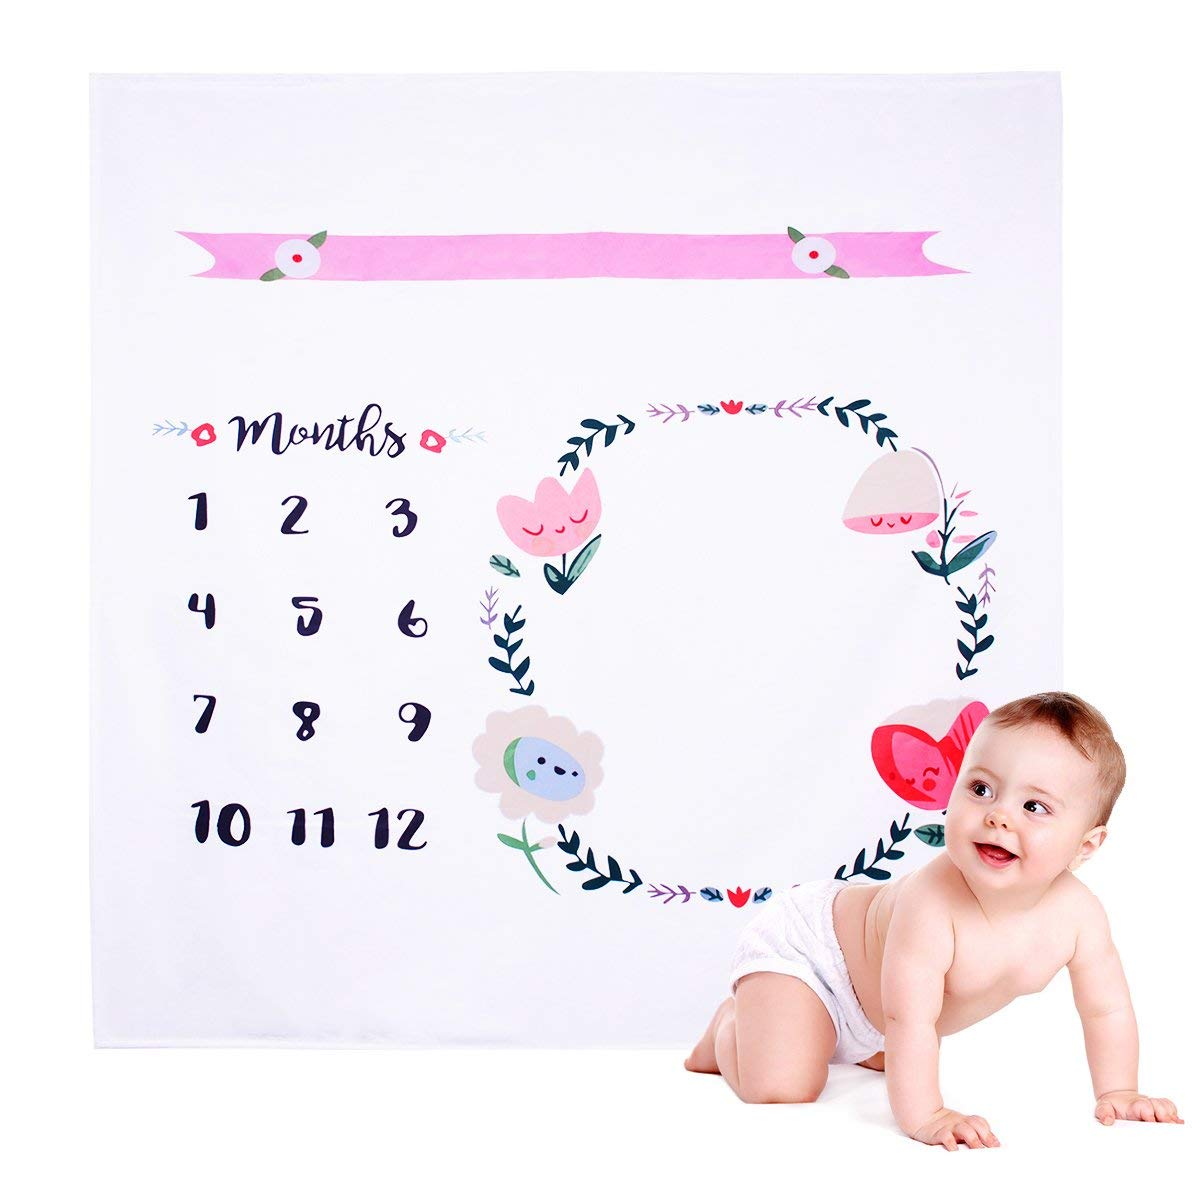 YoungRich Baby Blanket Monthly Milestone Blanket Photo Prop Set Shoots Flowers Backdrop Leaf-like Frame Prop Reusable Beautiful Infant Baby Swaddling Blanket for Photography 1 x 1m/40 x 40inch